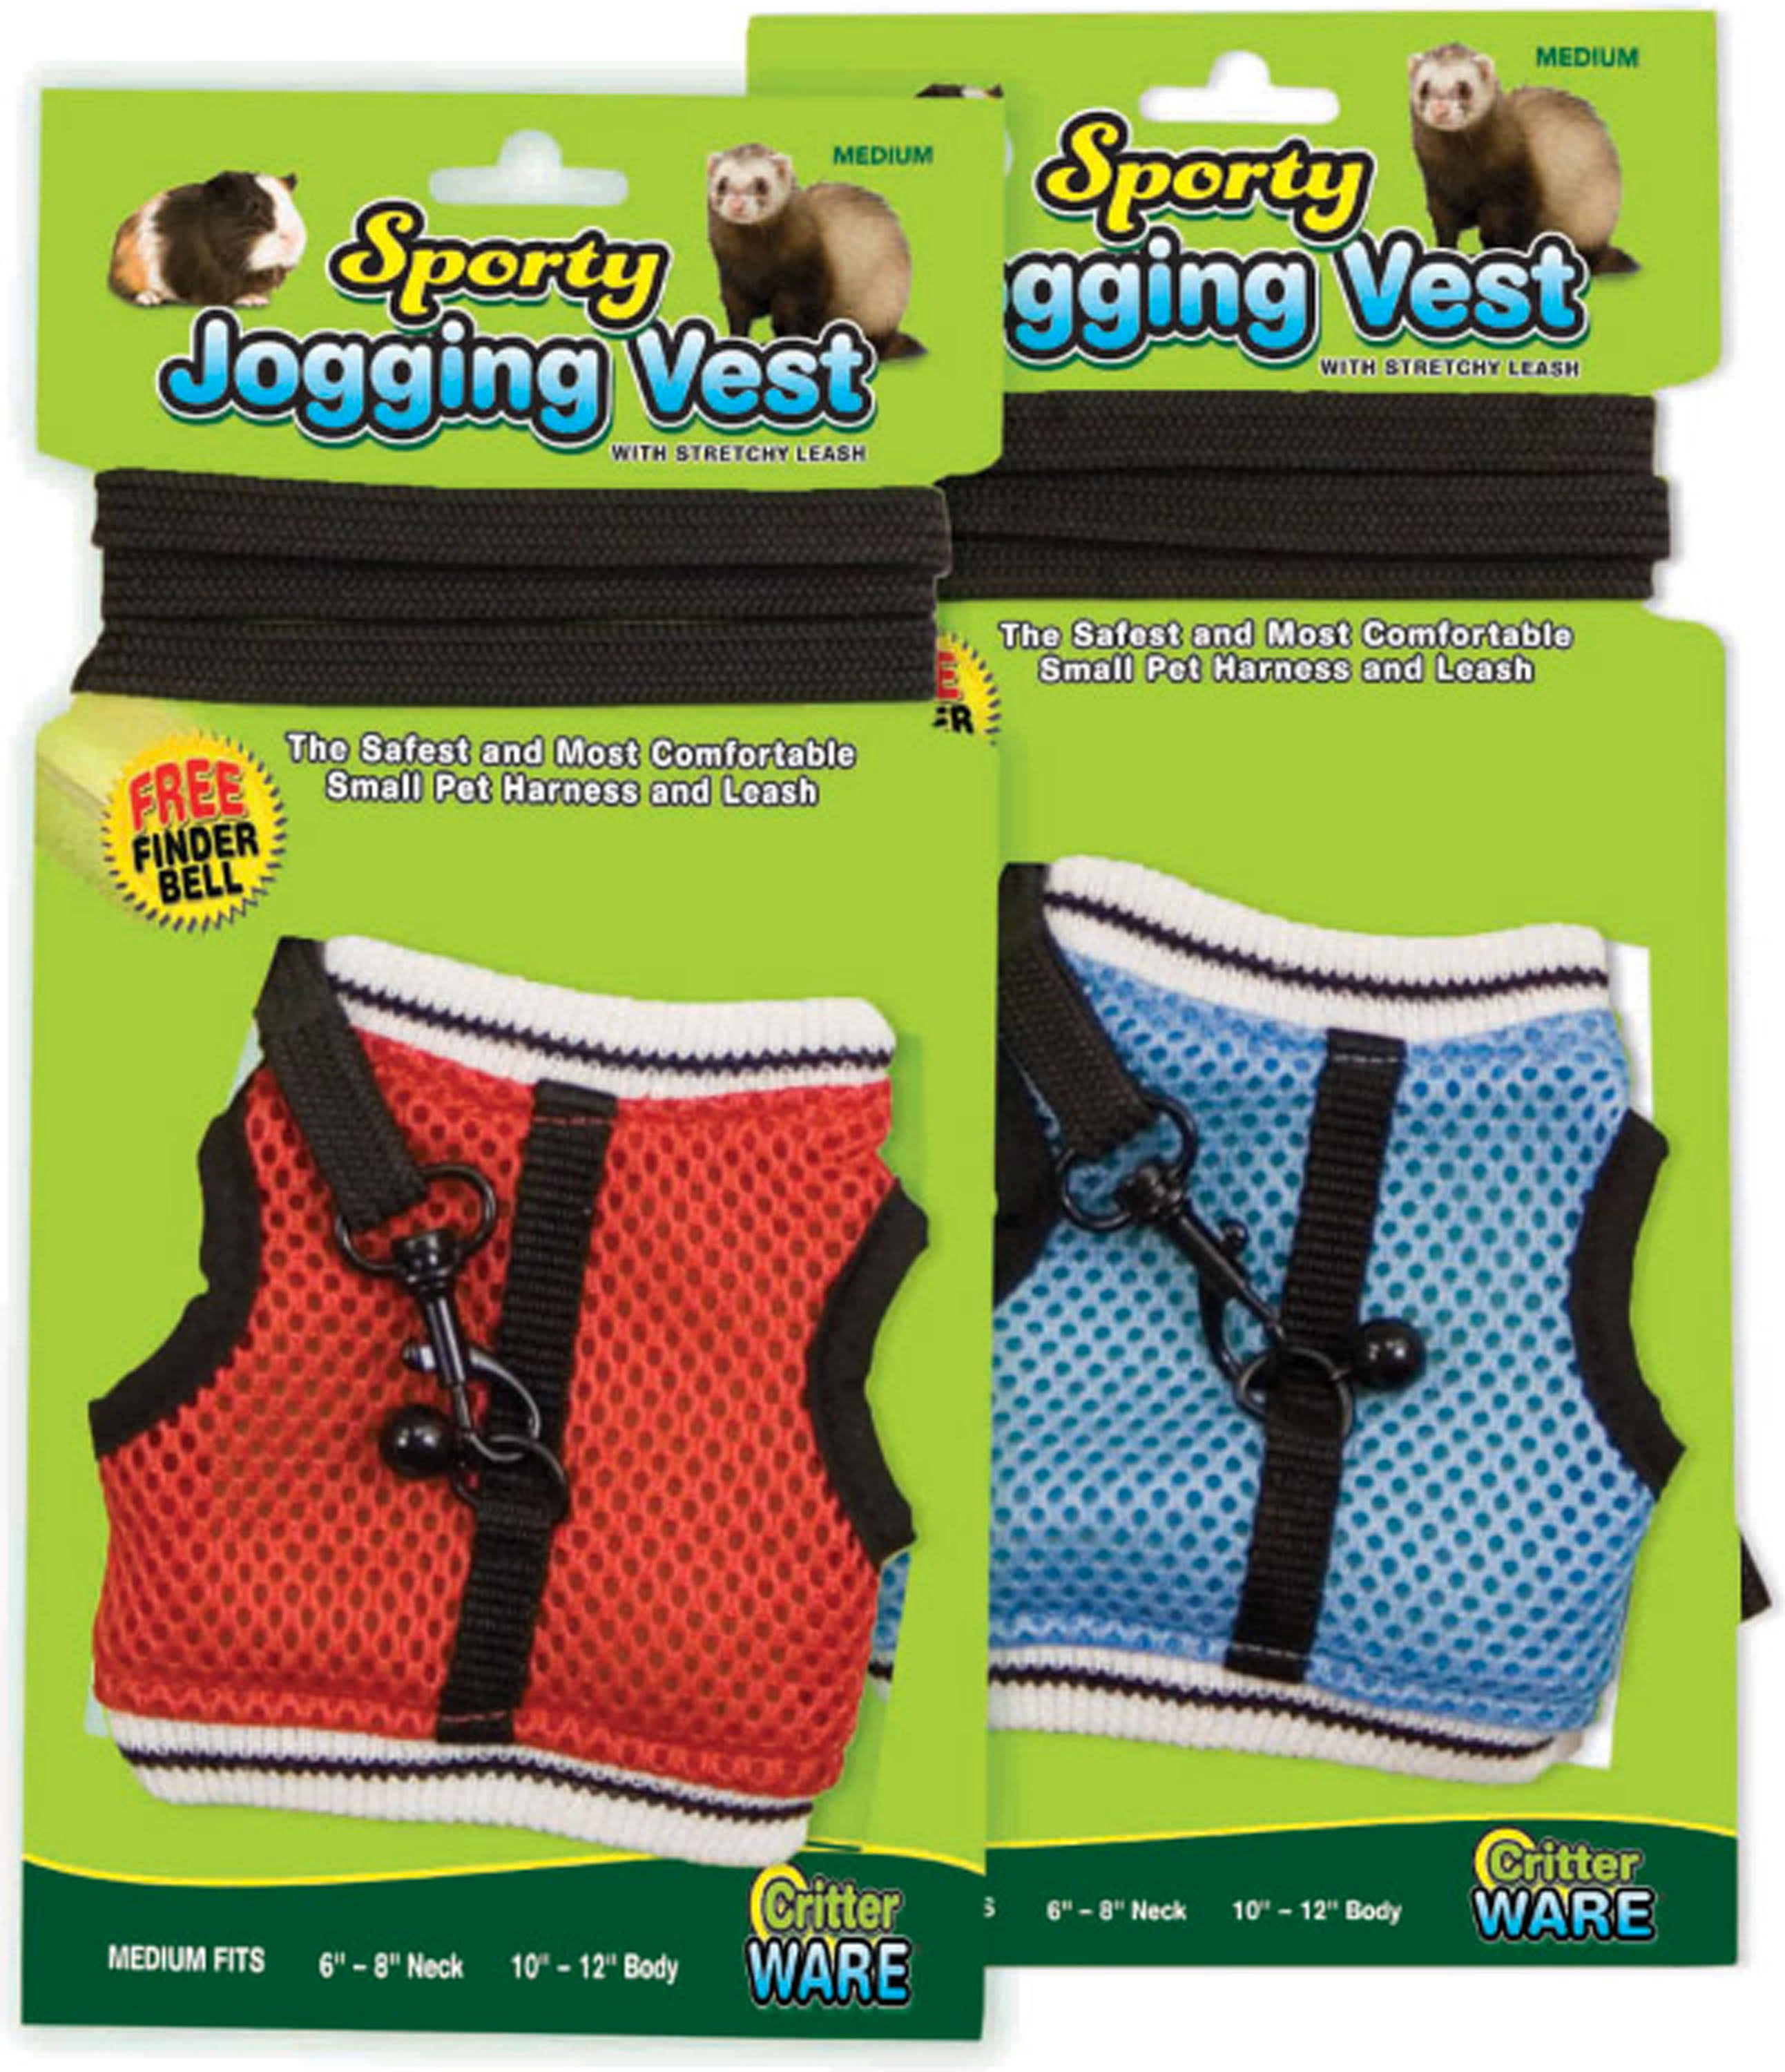 Ware Manufacturing Walk-N-Vest Pet Harness And Leash - Medium